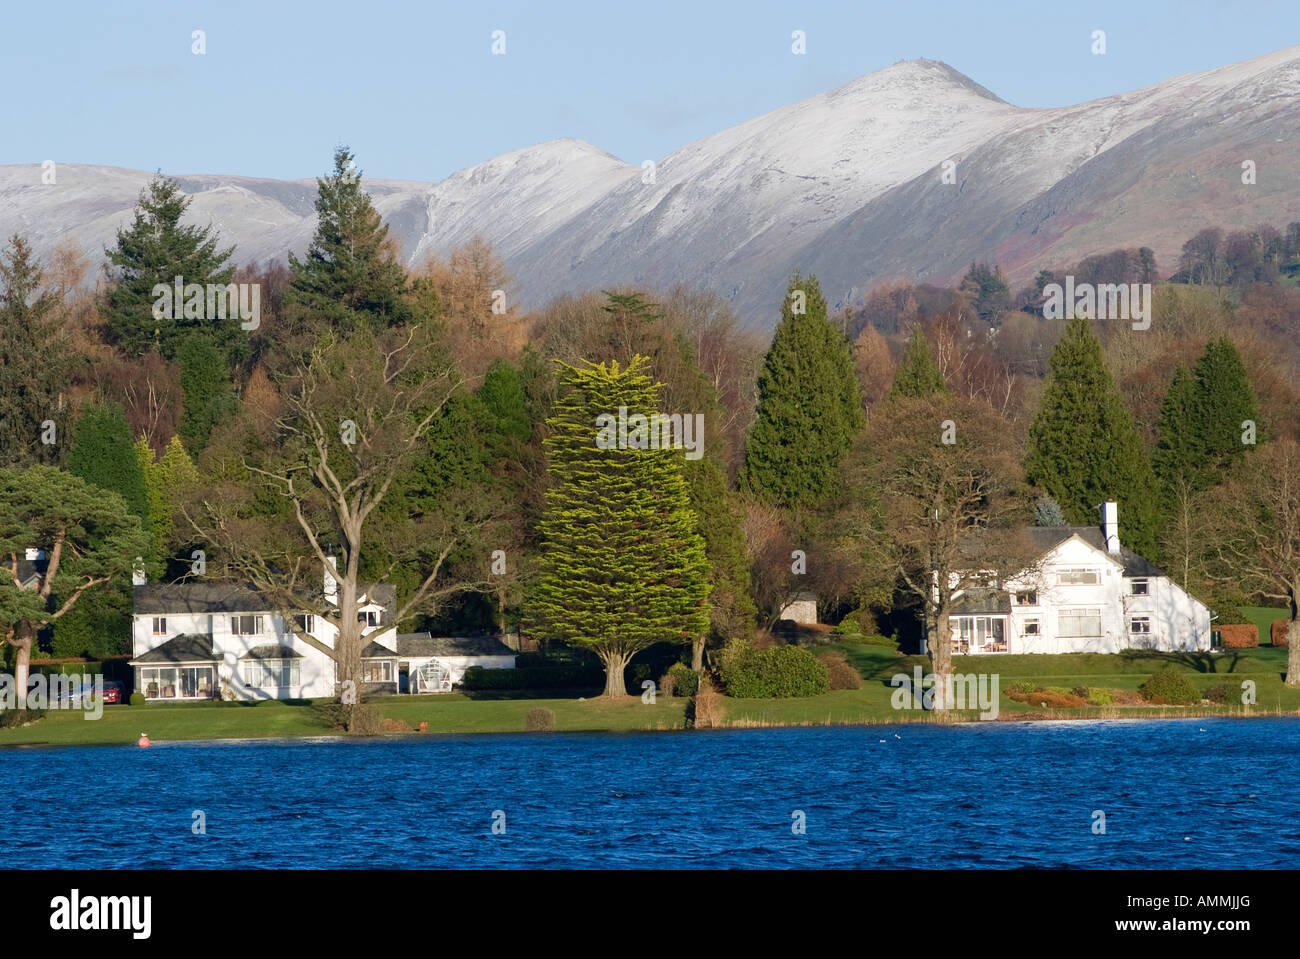 Lovely Gardens houses with lovely gardens on the shore of lake windermere near